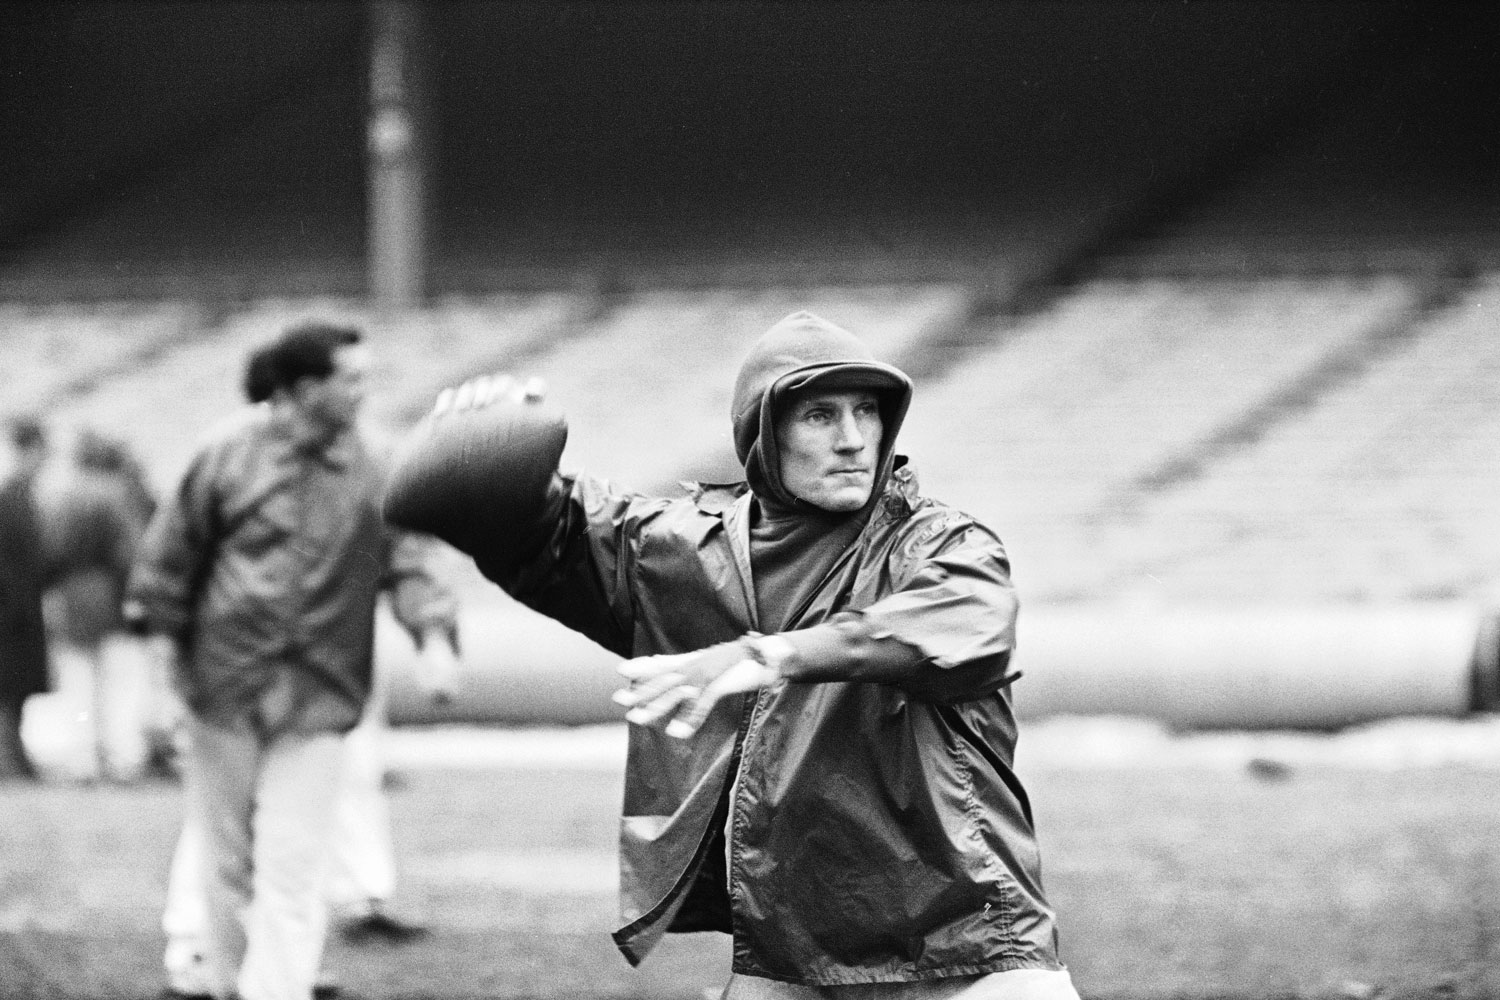 New York Giants quarterback Y.A. Tittle works on his passing during a practice at Yankee Stadium, New York, 1963. Tittle played with the Giants from 1961 to 1964.